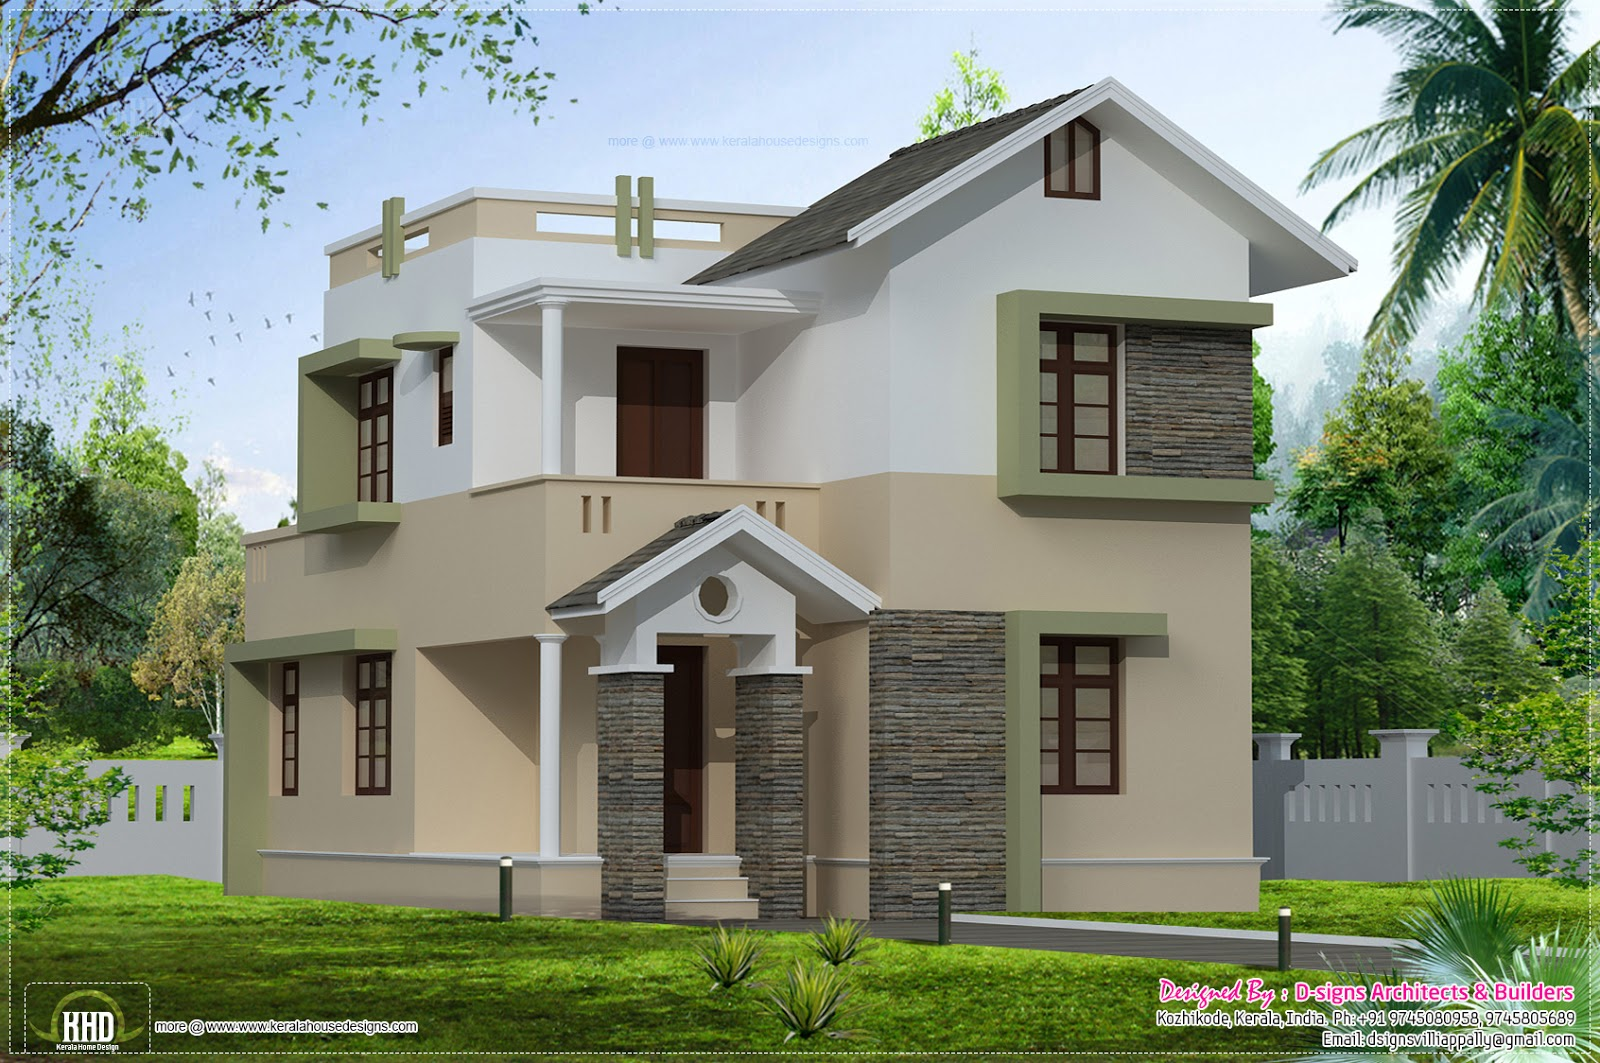 Front elevation of small houses home design and decor reviews - Home house design ...